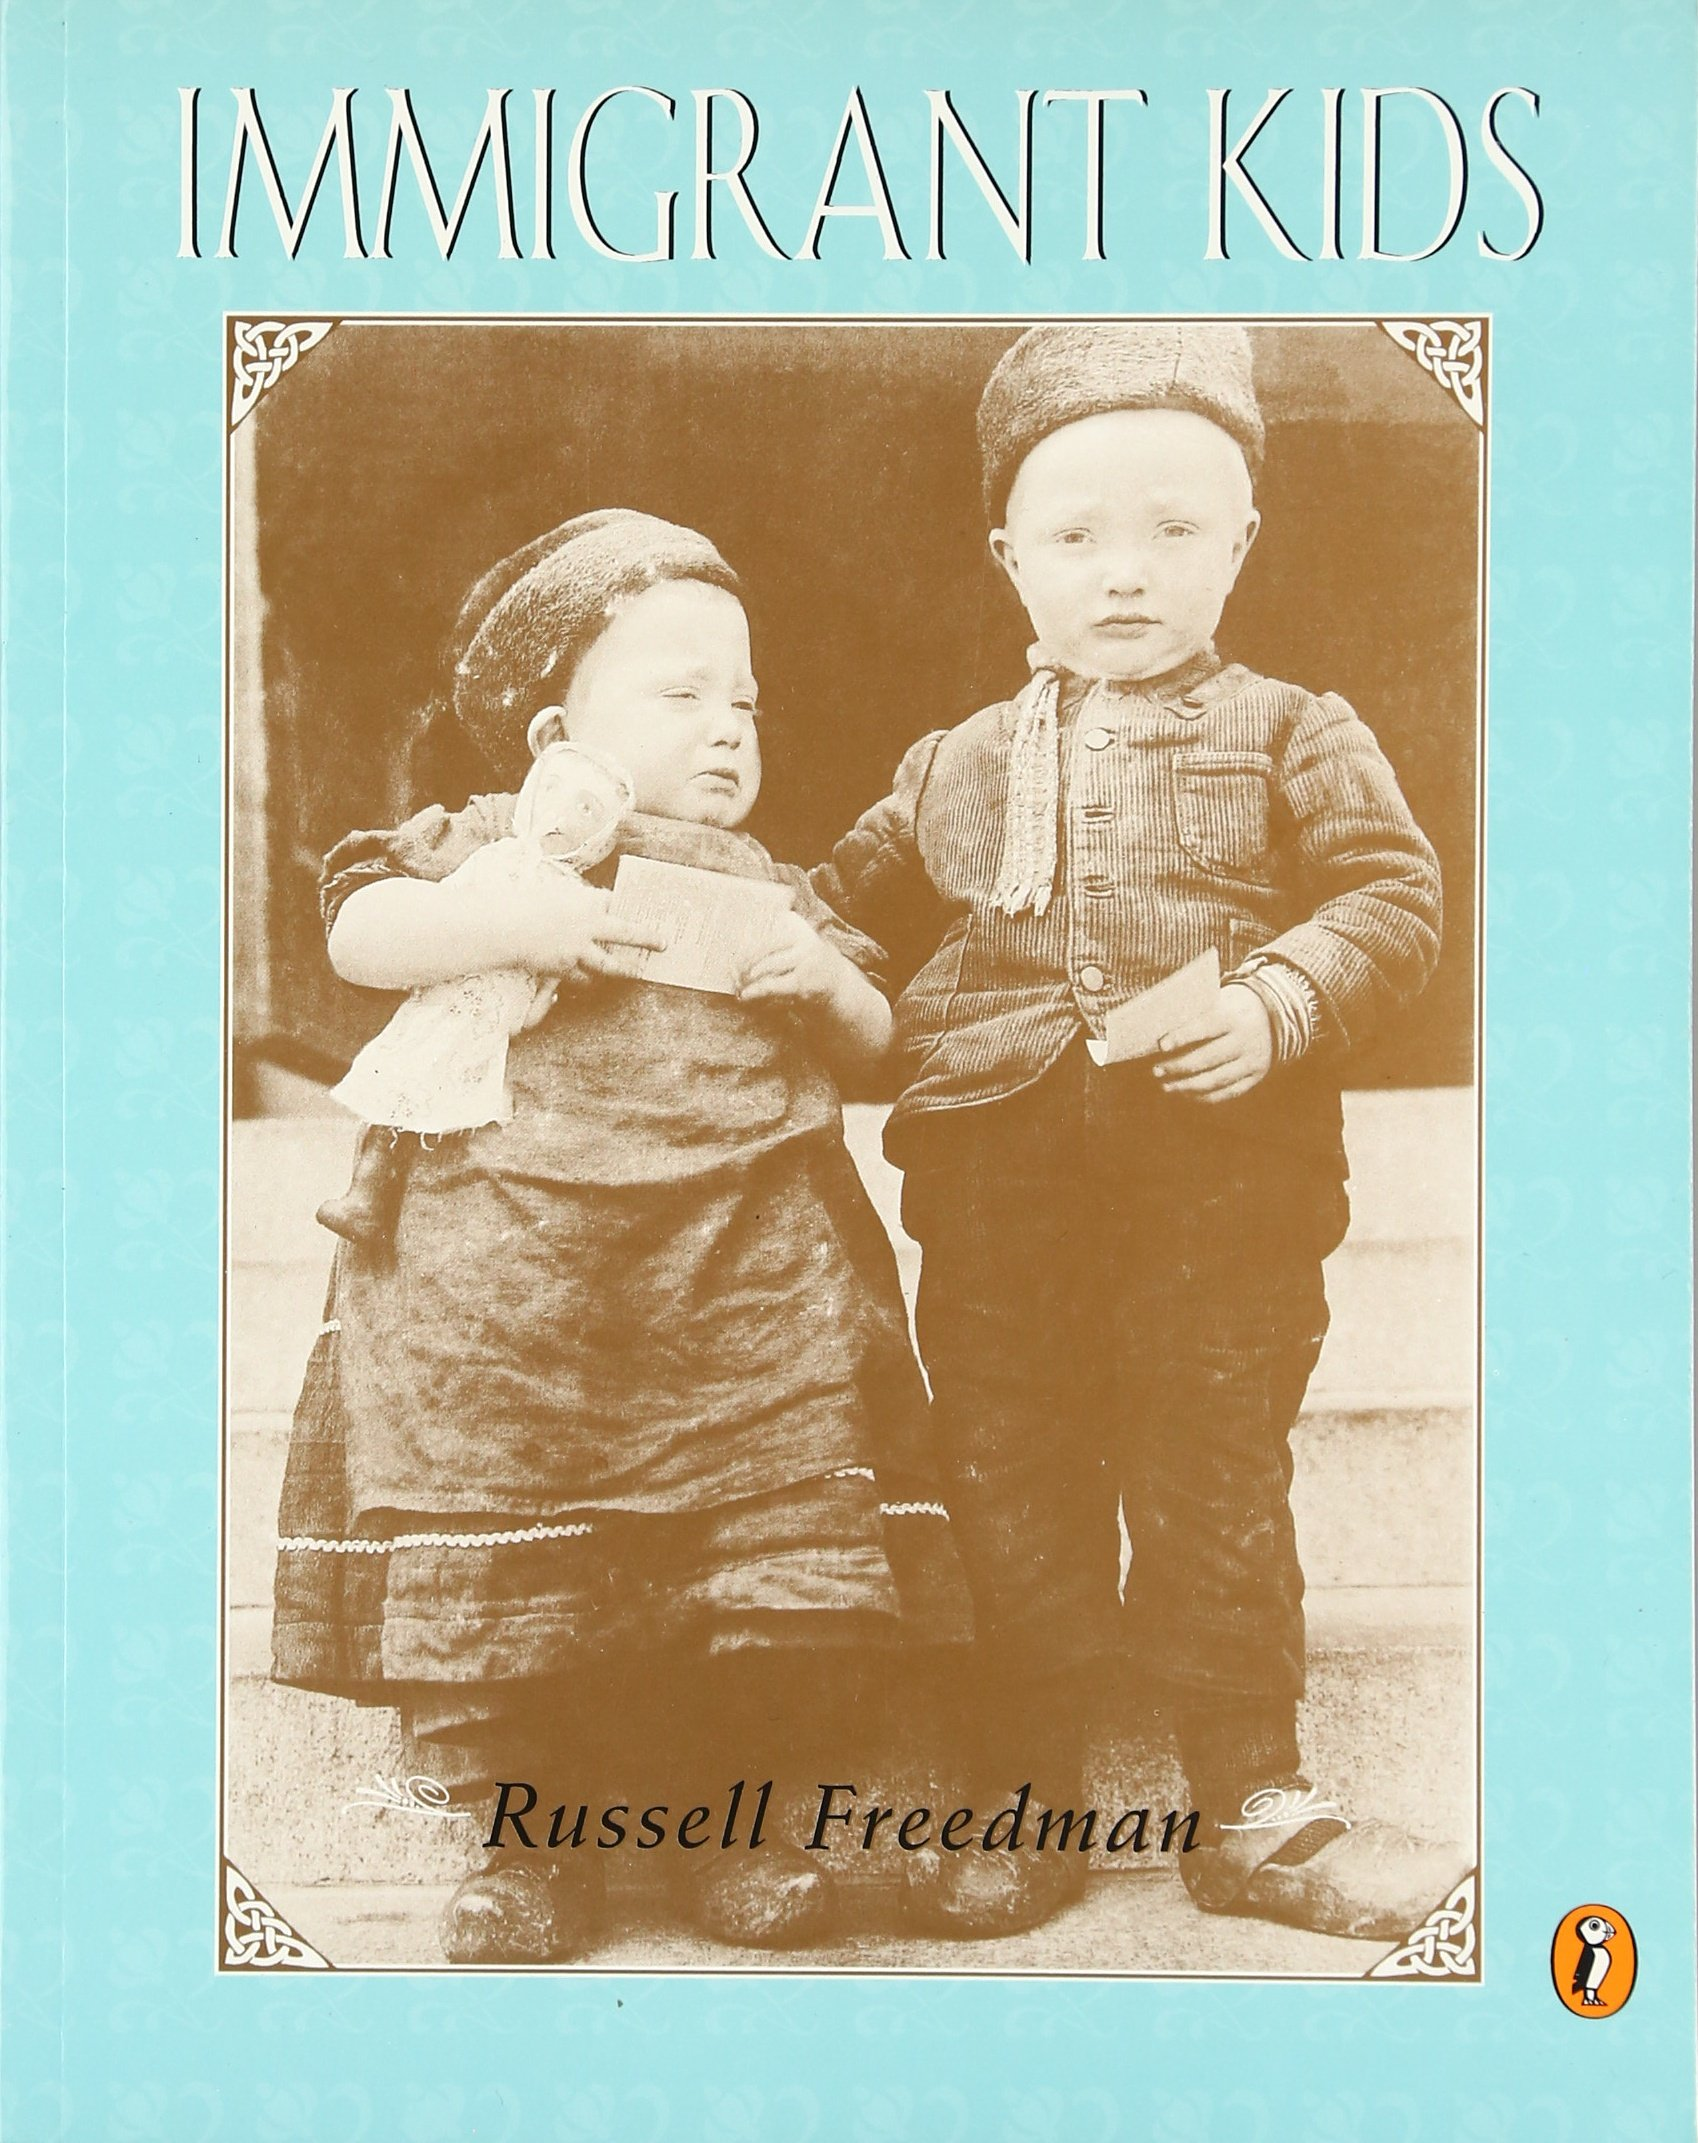 immigrant kids paperback 1995c puffin russell freedman